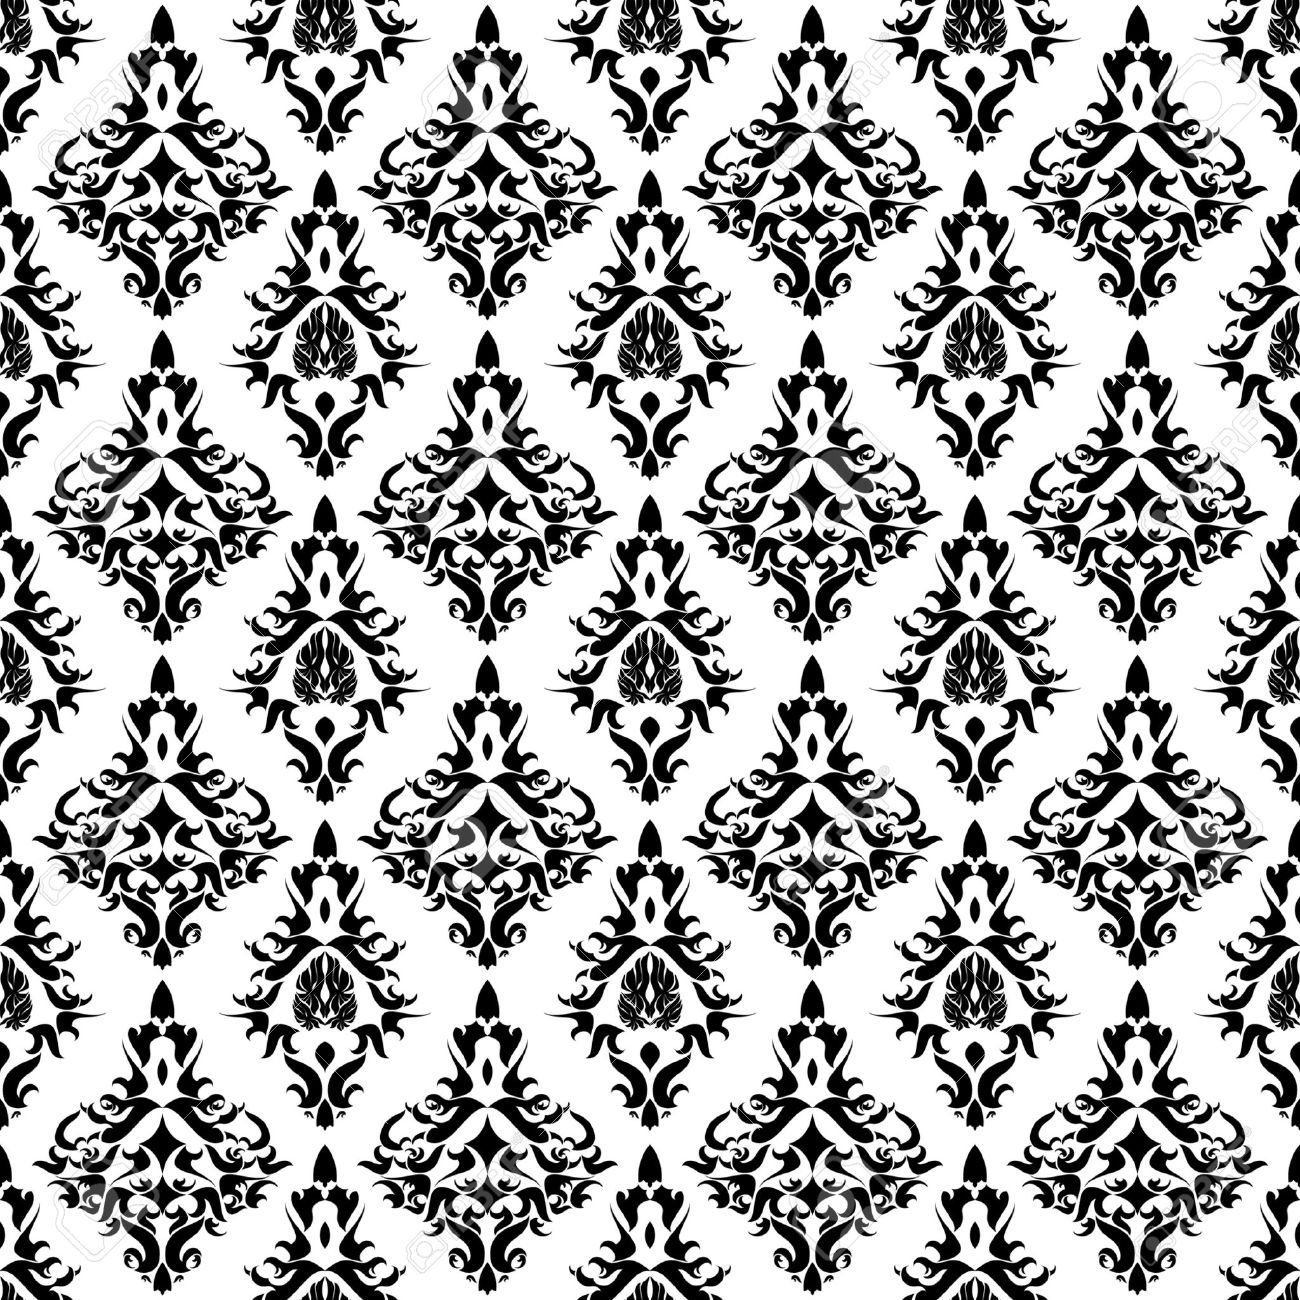 Vintage Damask Wallpaper Vector Seamless Pattern Royalty Free